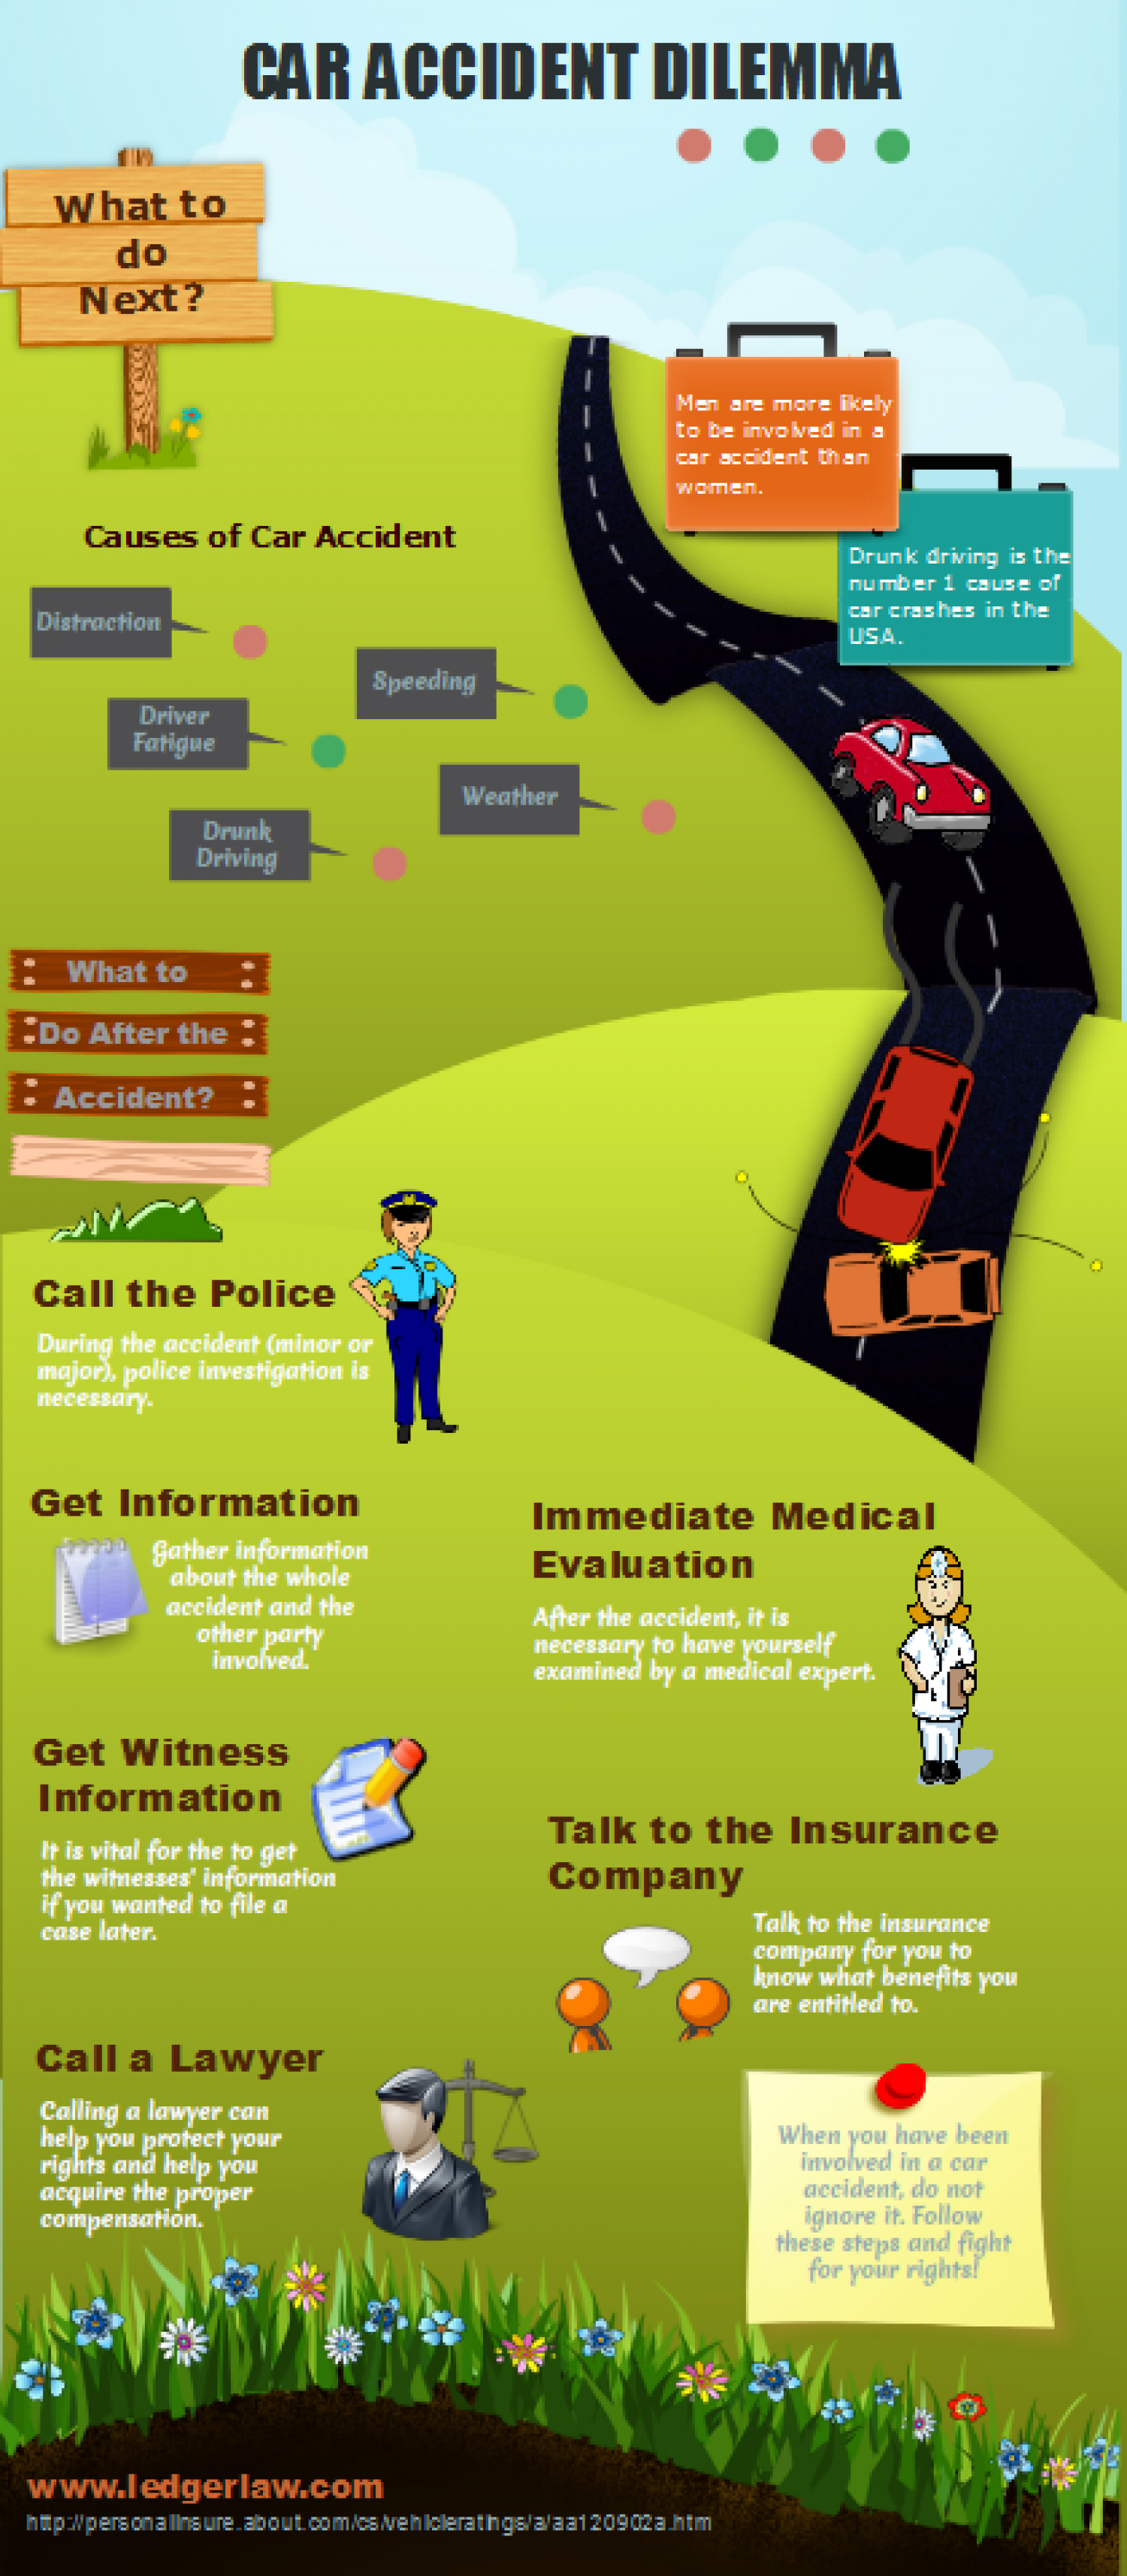 Car Accident Dilemma Infographic